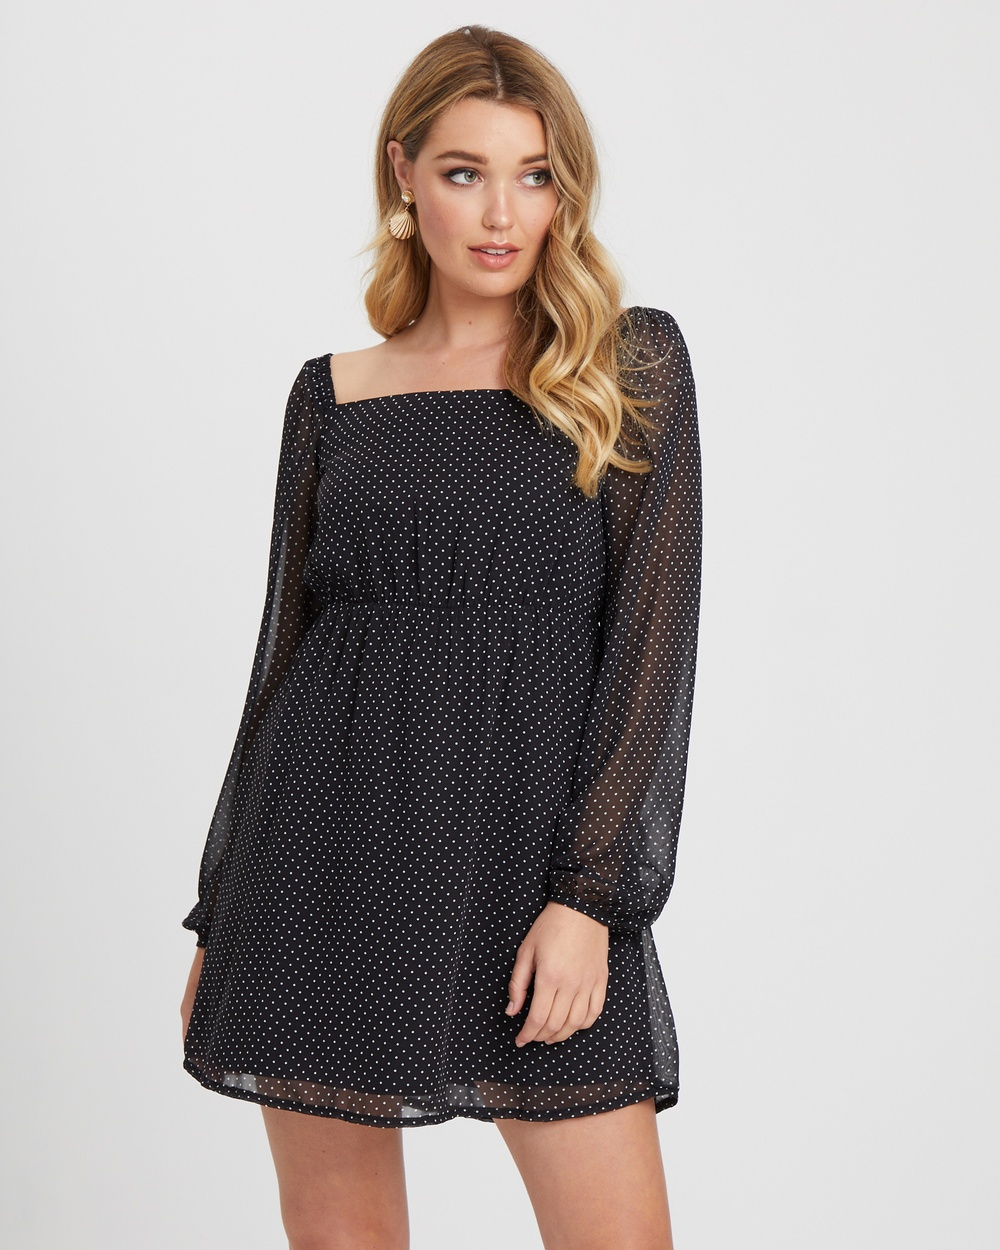 Calli Bettrina Square Neck Dress Dresses Black W- White Polka Dots Bettrina Square Neck Dress